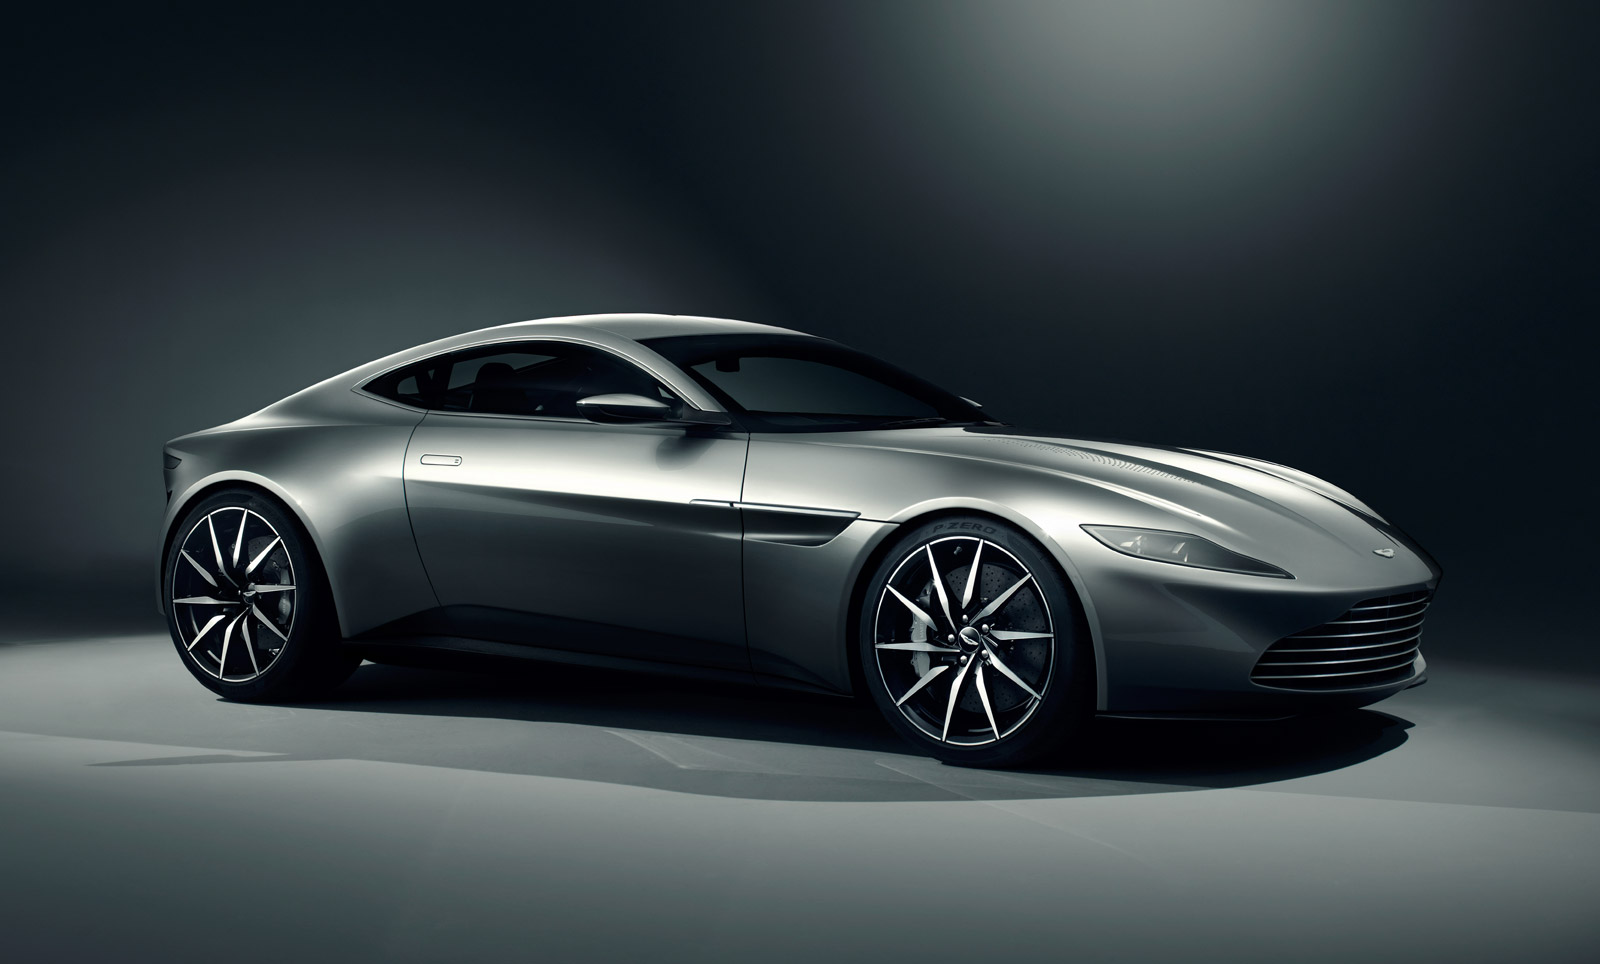 James Bond To Drive New Aston Martin DB10 In Upcoming Spectre Movie